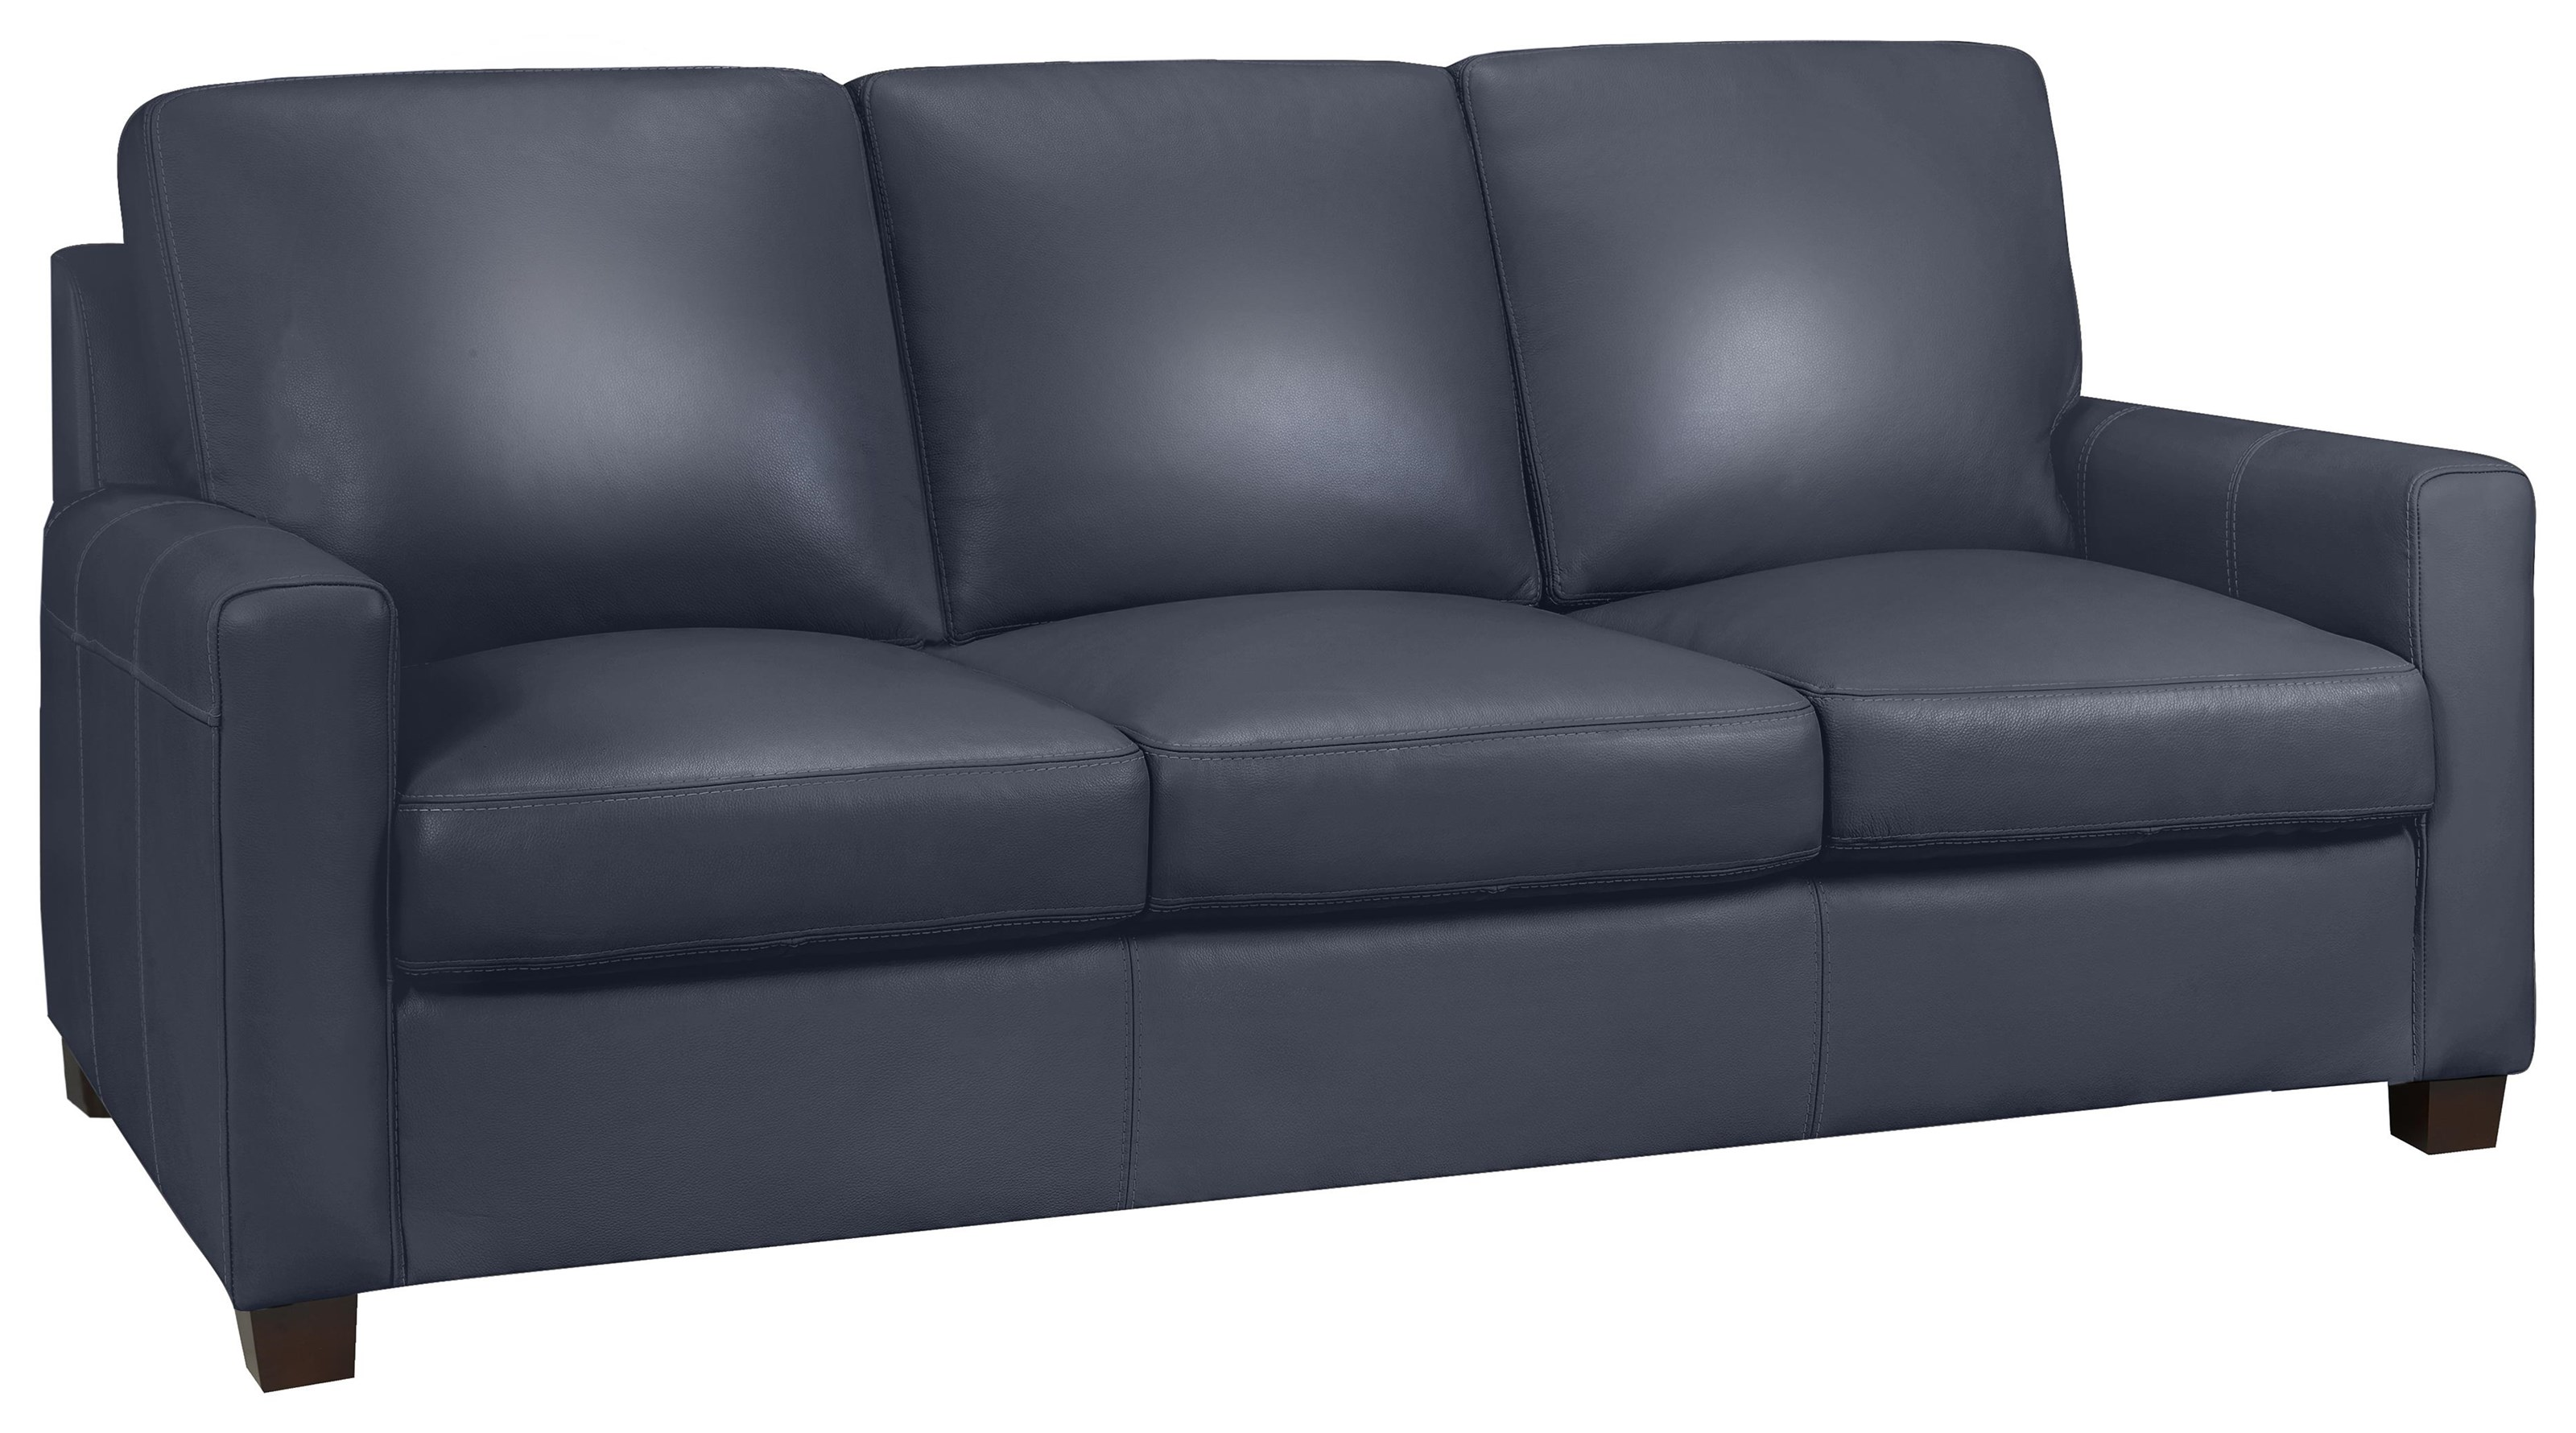 Milan Sofa - Lthr - A/l Navy by Leather Living at Stoney Creek Furniture